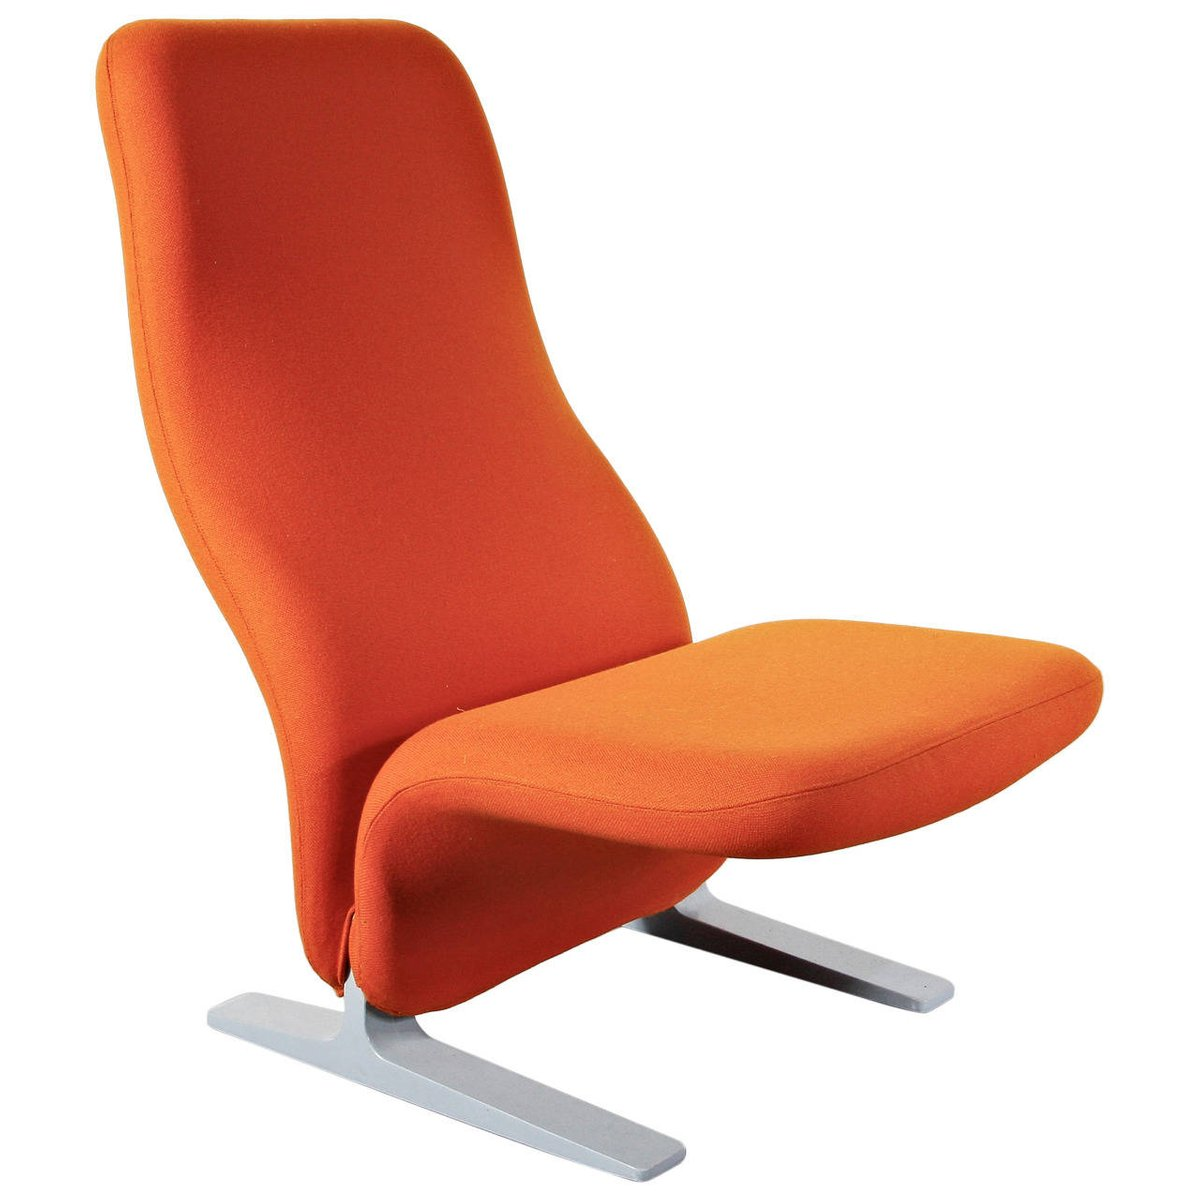 fauteuil concorde orange par pierre paulin pour artifort. Black Bedroom Furniture Sets. Home Design Ideas